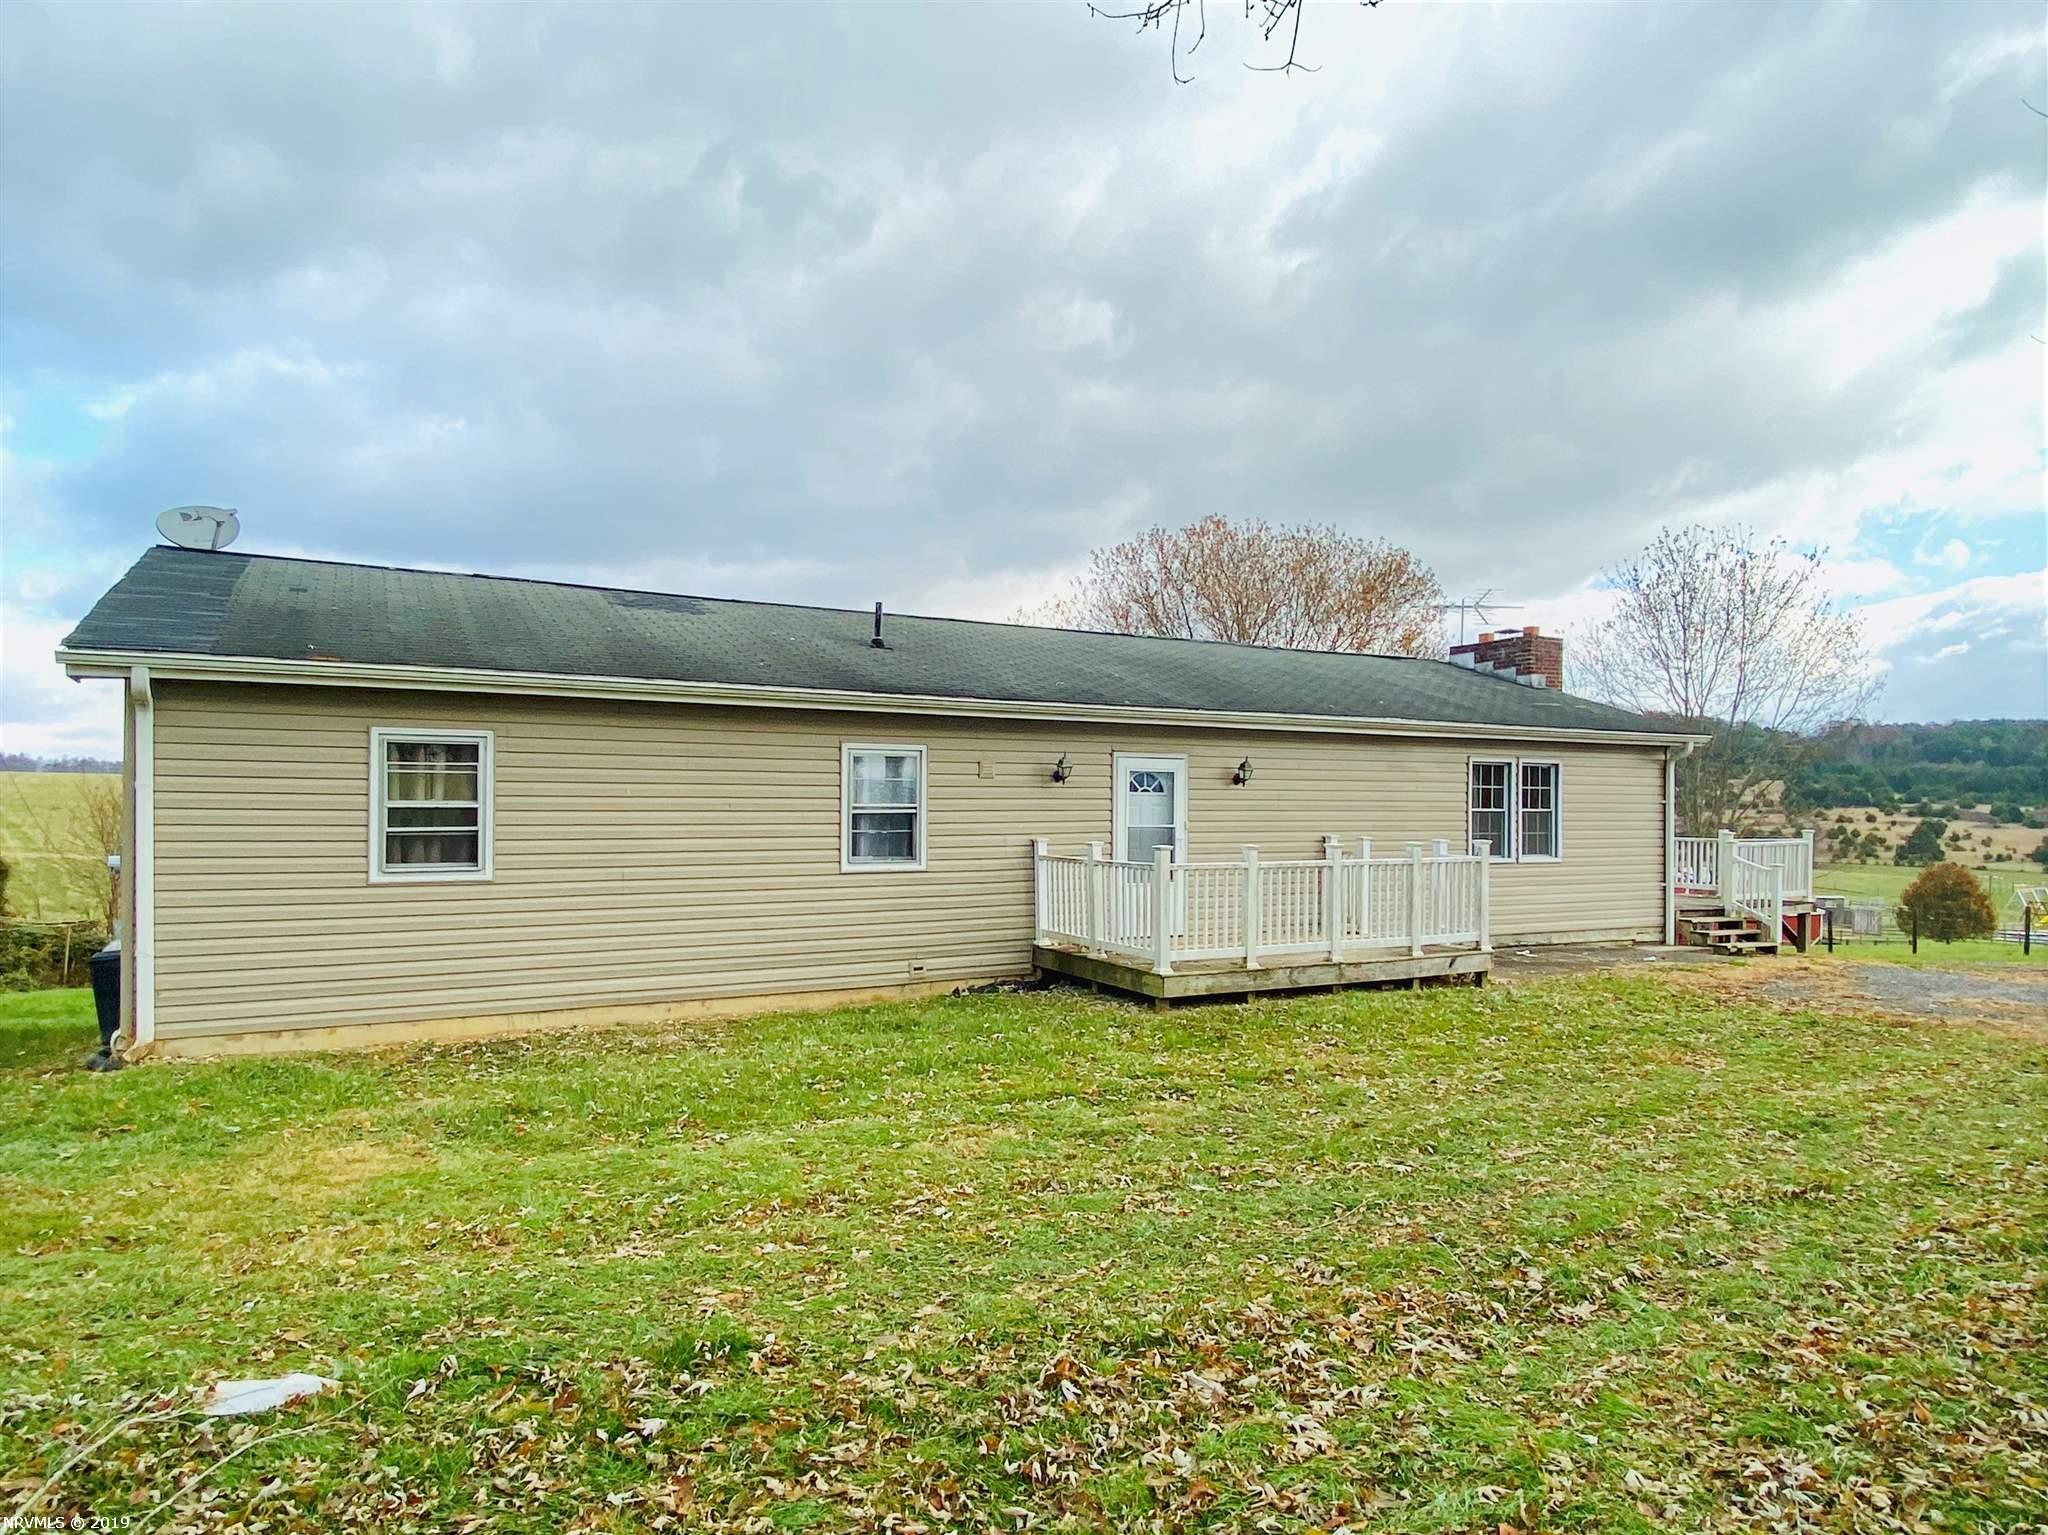 Lovely updated 3 bedroom 2 bath ranch. This home sits on 1.13 acres with lots of privacy. Gorgeous rustic kitchen with custom cabinets and granite counter tops. Just a few personal touches and updates to this home to make it all yours. Large detached garage with lots of storage space! Make plans to see this home today.